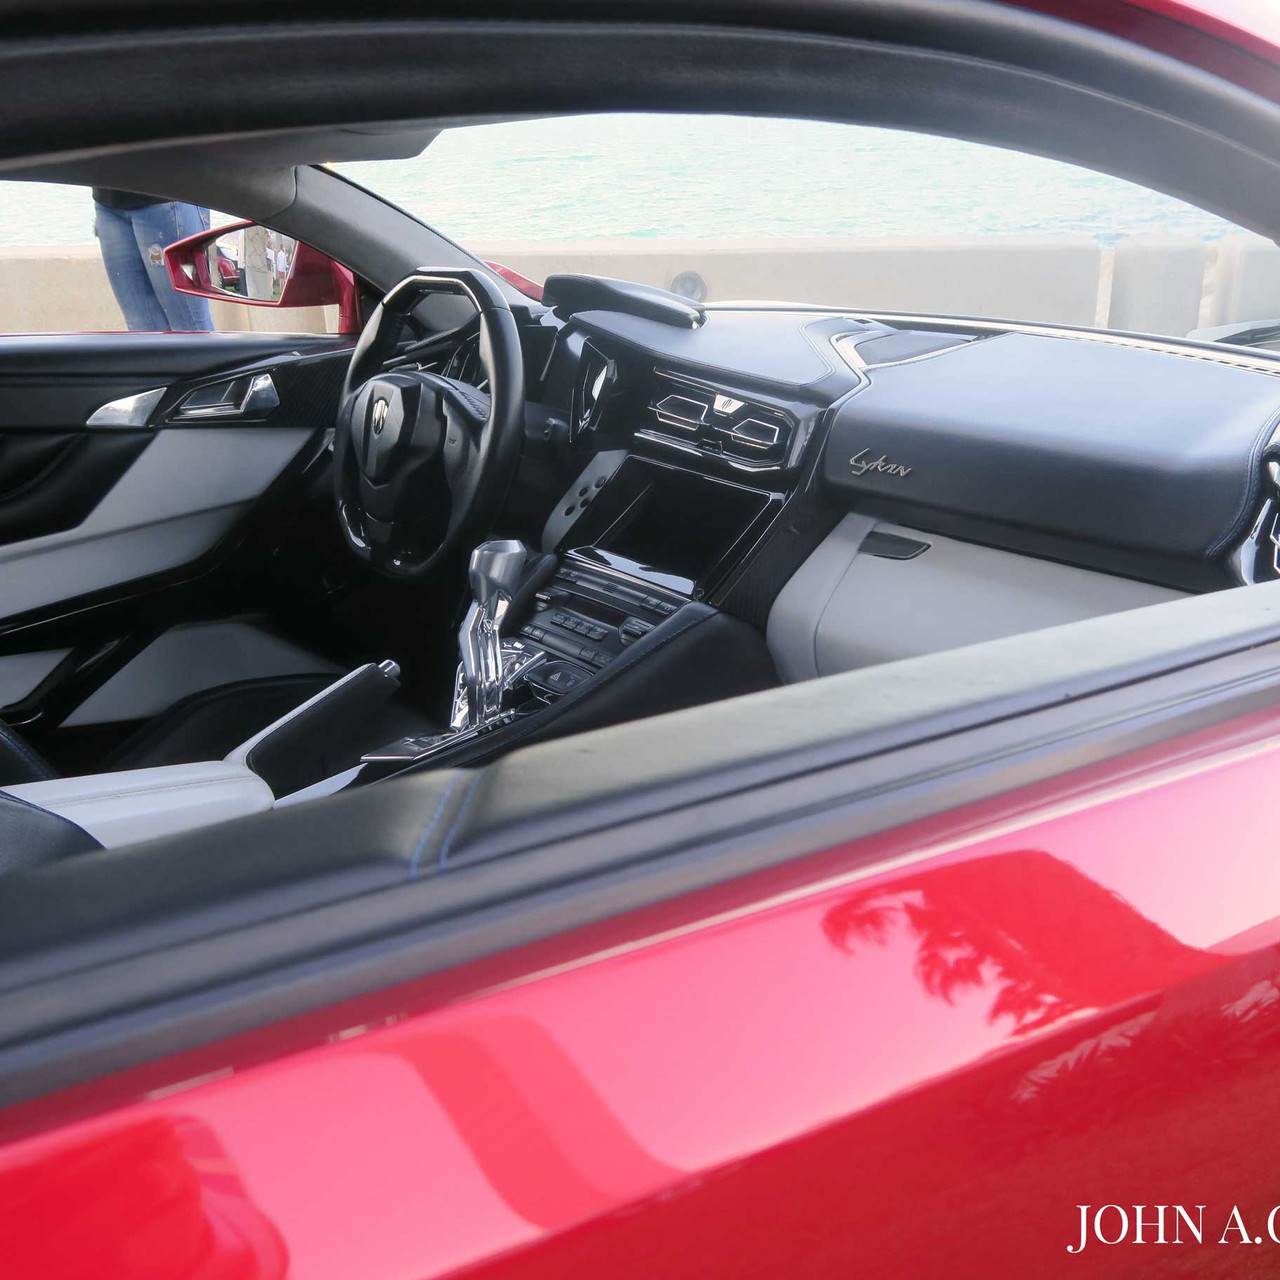 Detail of the interior featuring plenty of leather and carbon fiber details alongside an unique holographic display on the center console.